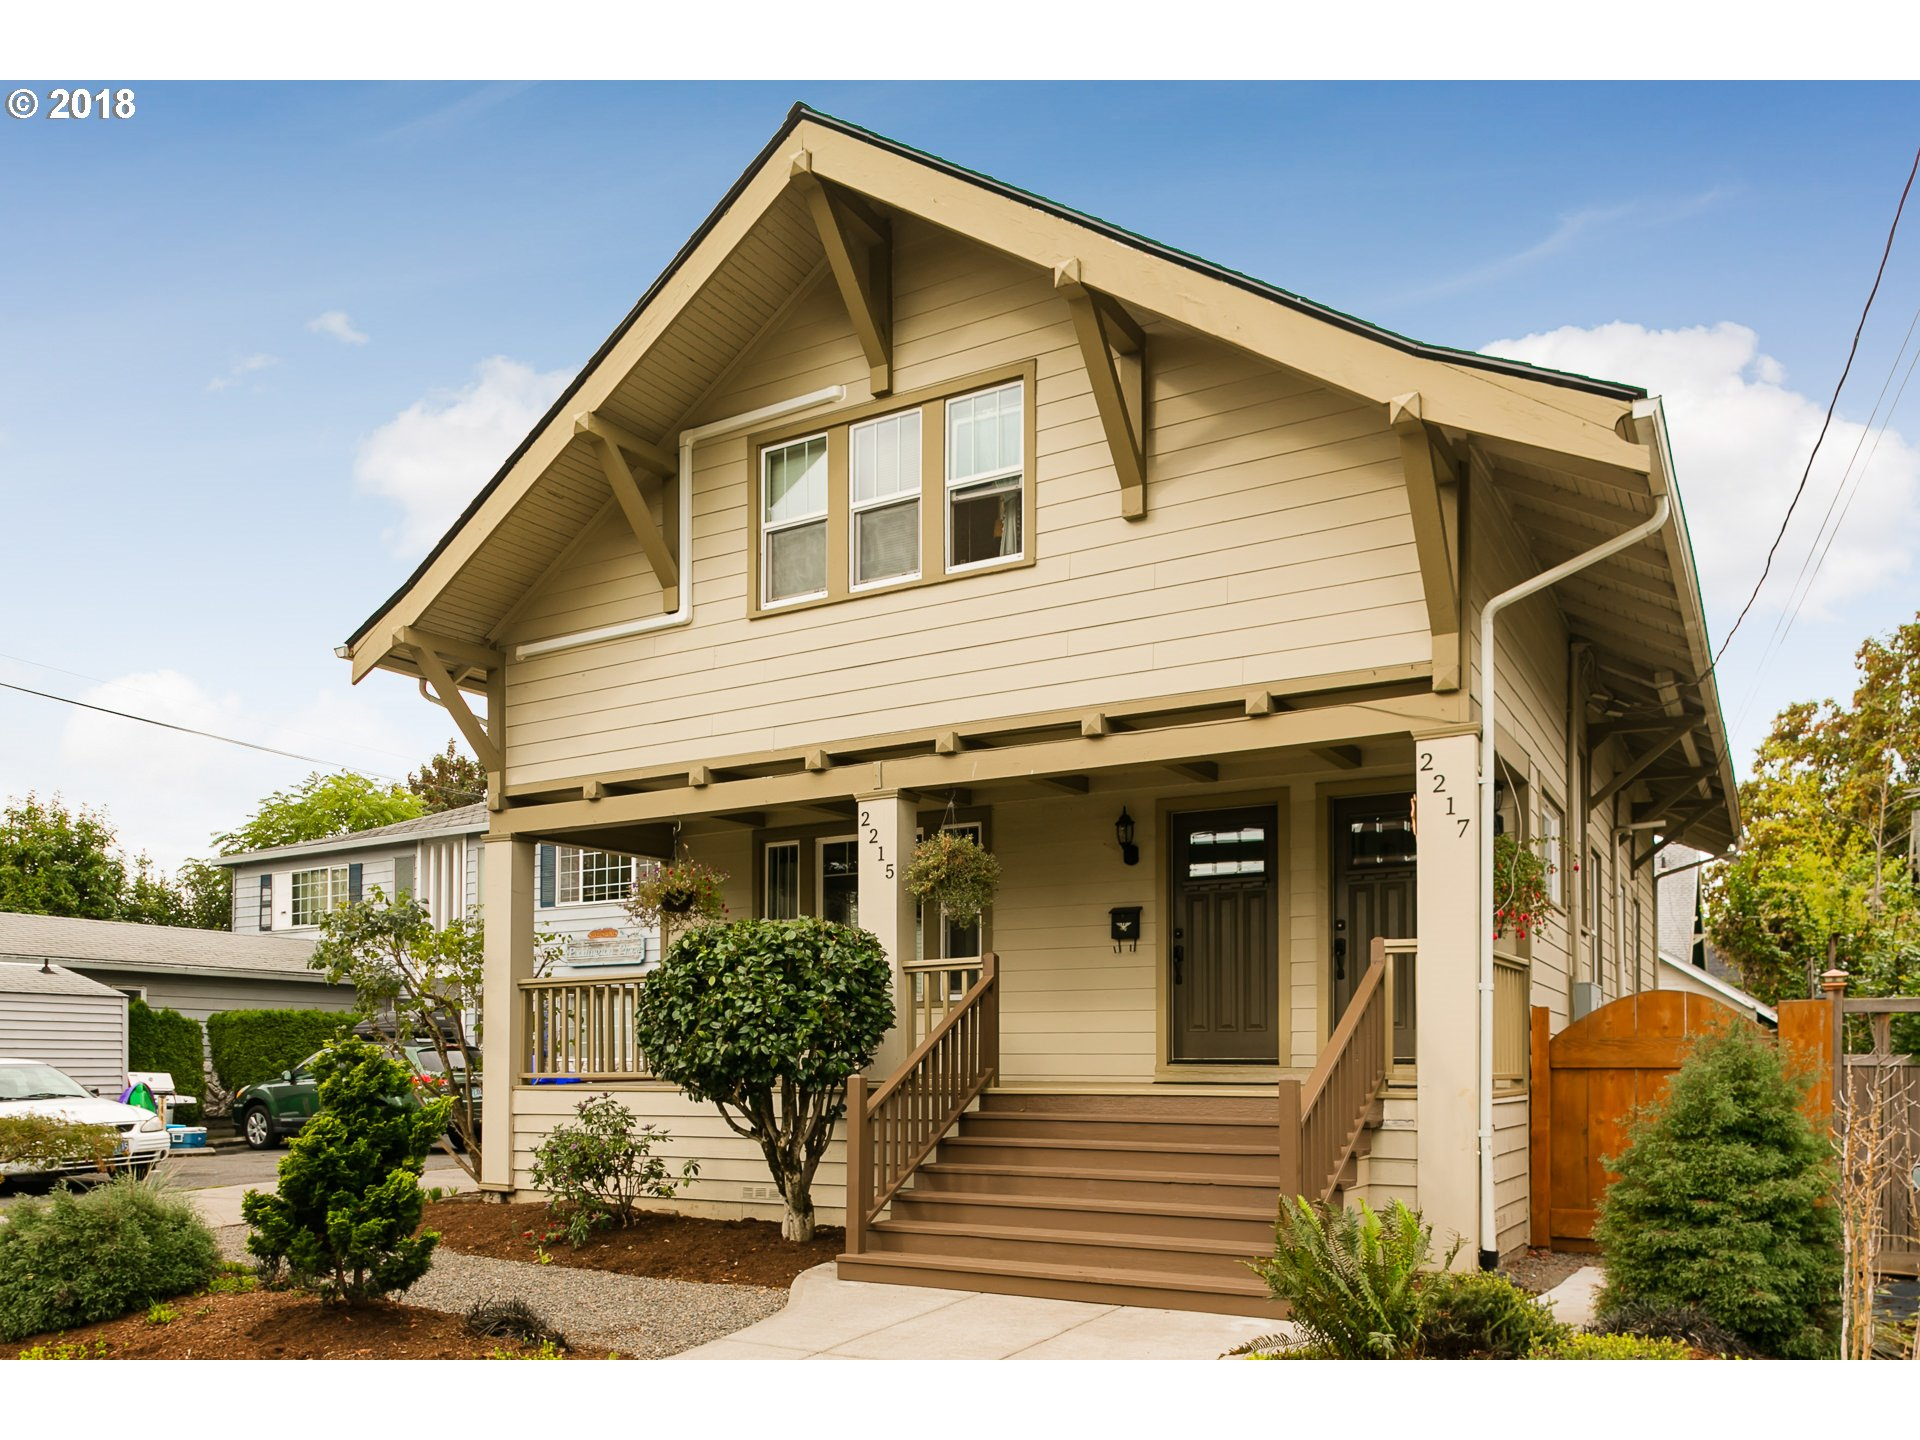 Photo for 2215 NE 46TH AVE, Portland, OR 97213 (MLS # 18022006)